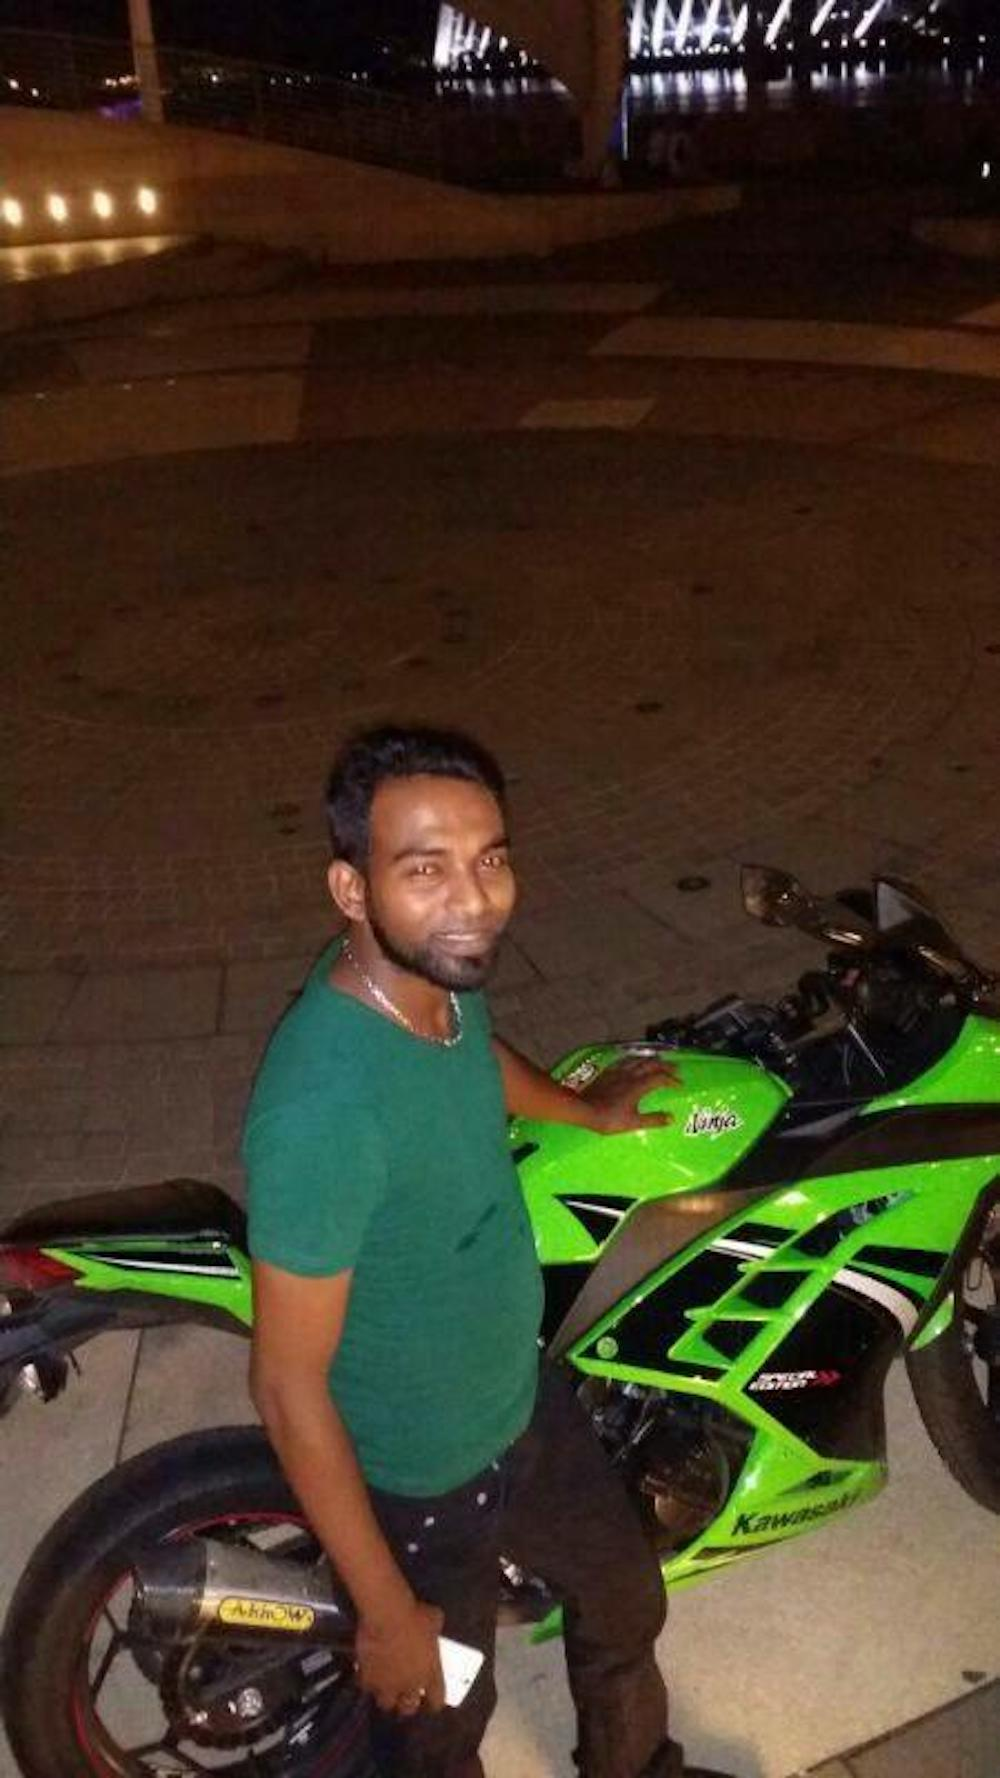 Manchester United fan and motorcycle enthusiast Pannir Selvam is seen here in May 2014 with his newly-purchased motorcycle which he used to visit his elder sister Sangkari. — Picture courtesy of Pannir Selvam's family